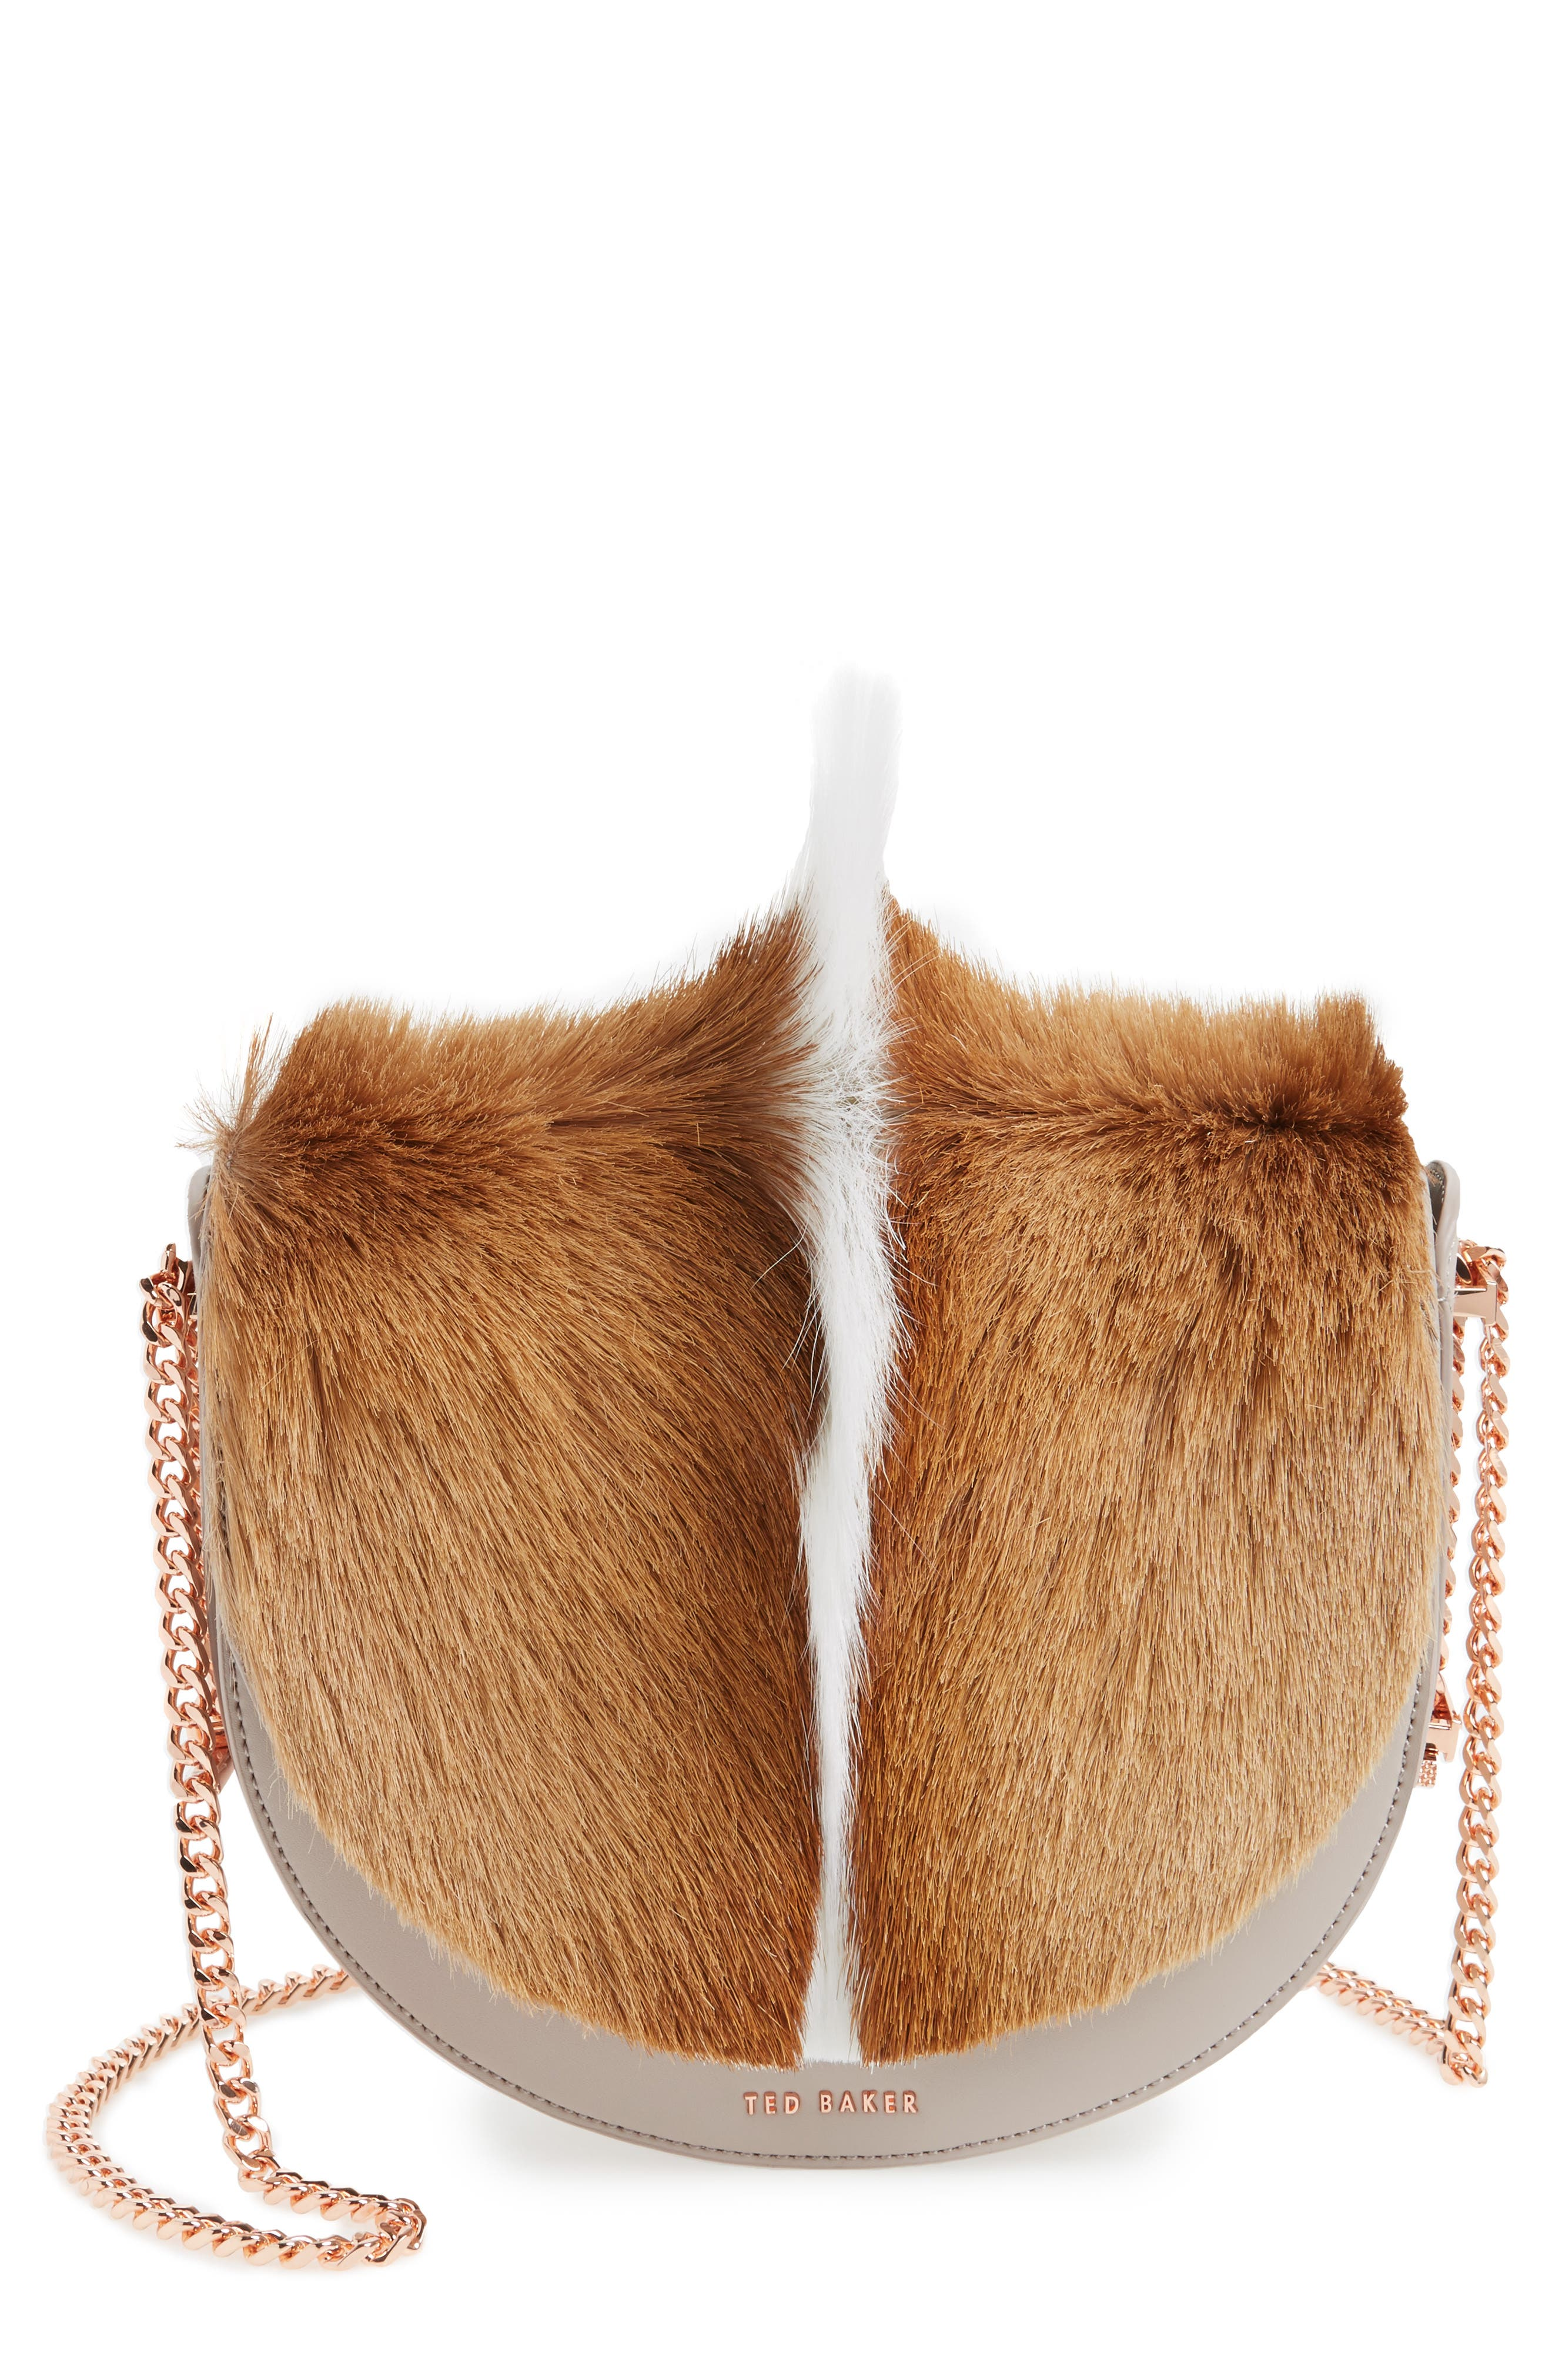 Ted Baker London Alisonn Leather & Genuine Springbok Fur Saddle Bag